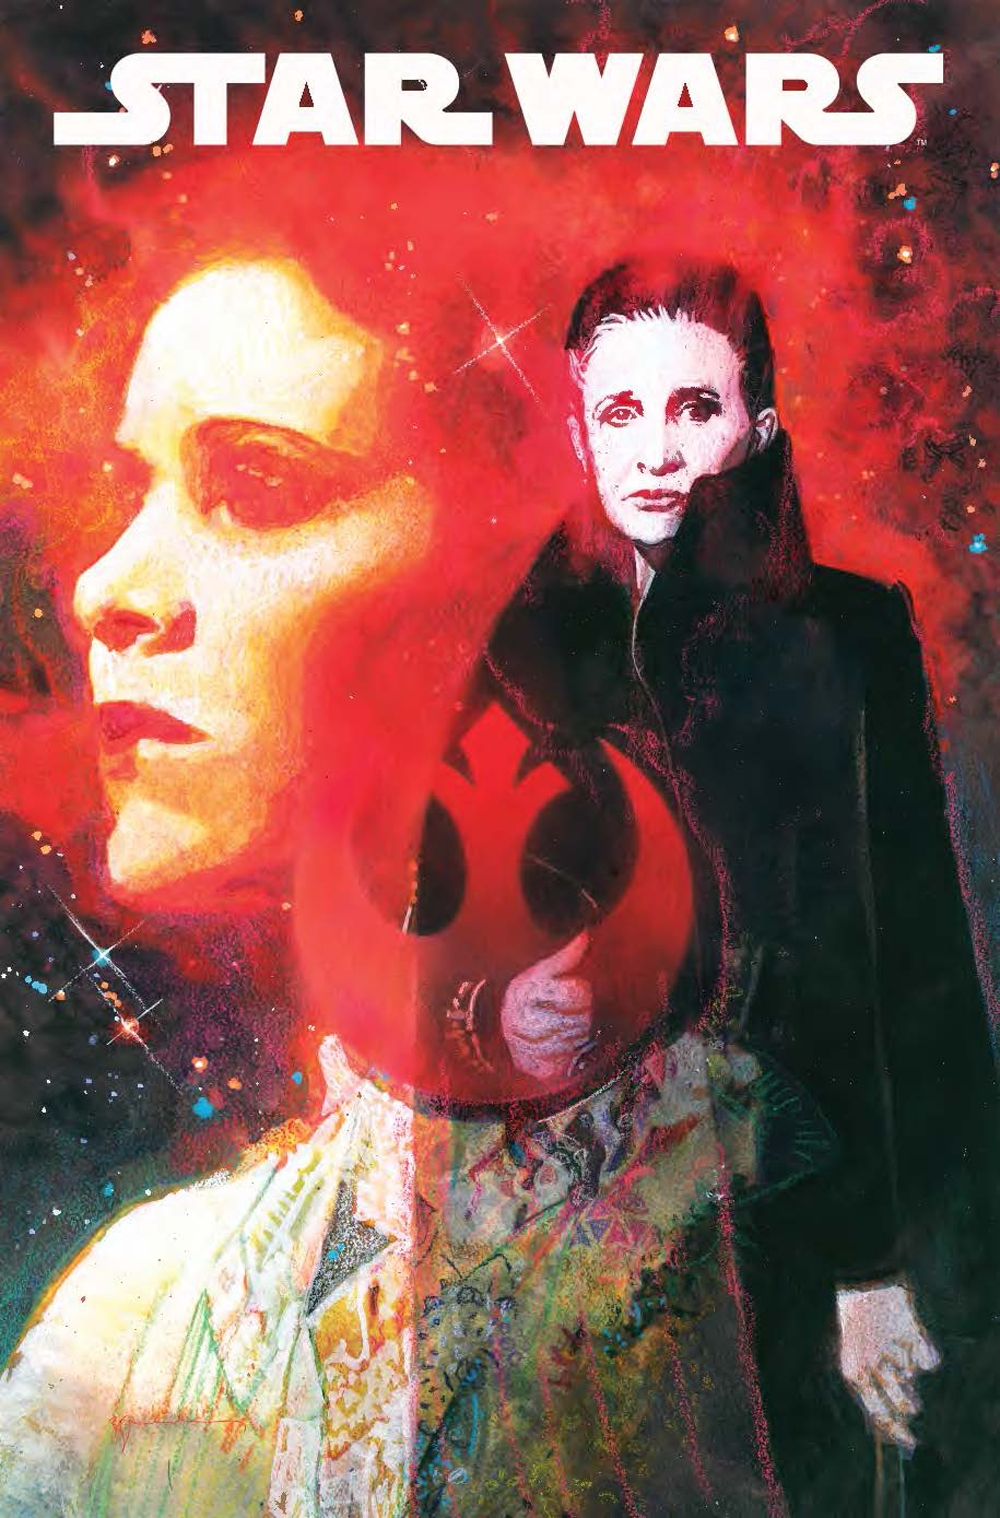 Star Wars #67 (Bill Sienkiewicz Variant Cover) (19.06.2019)